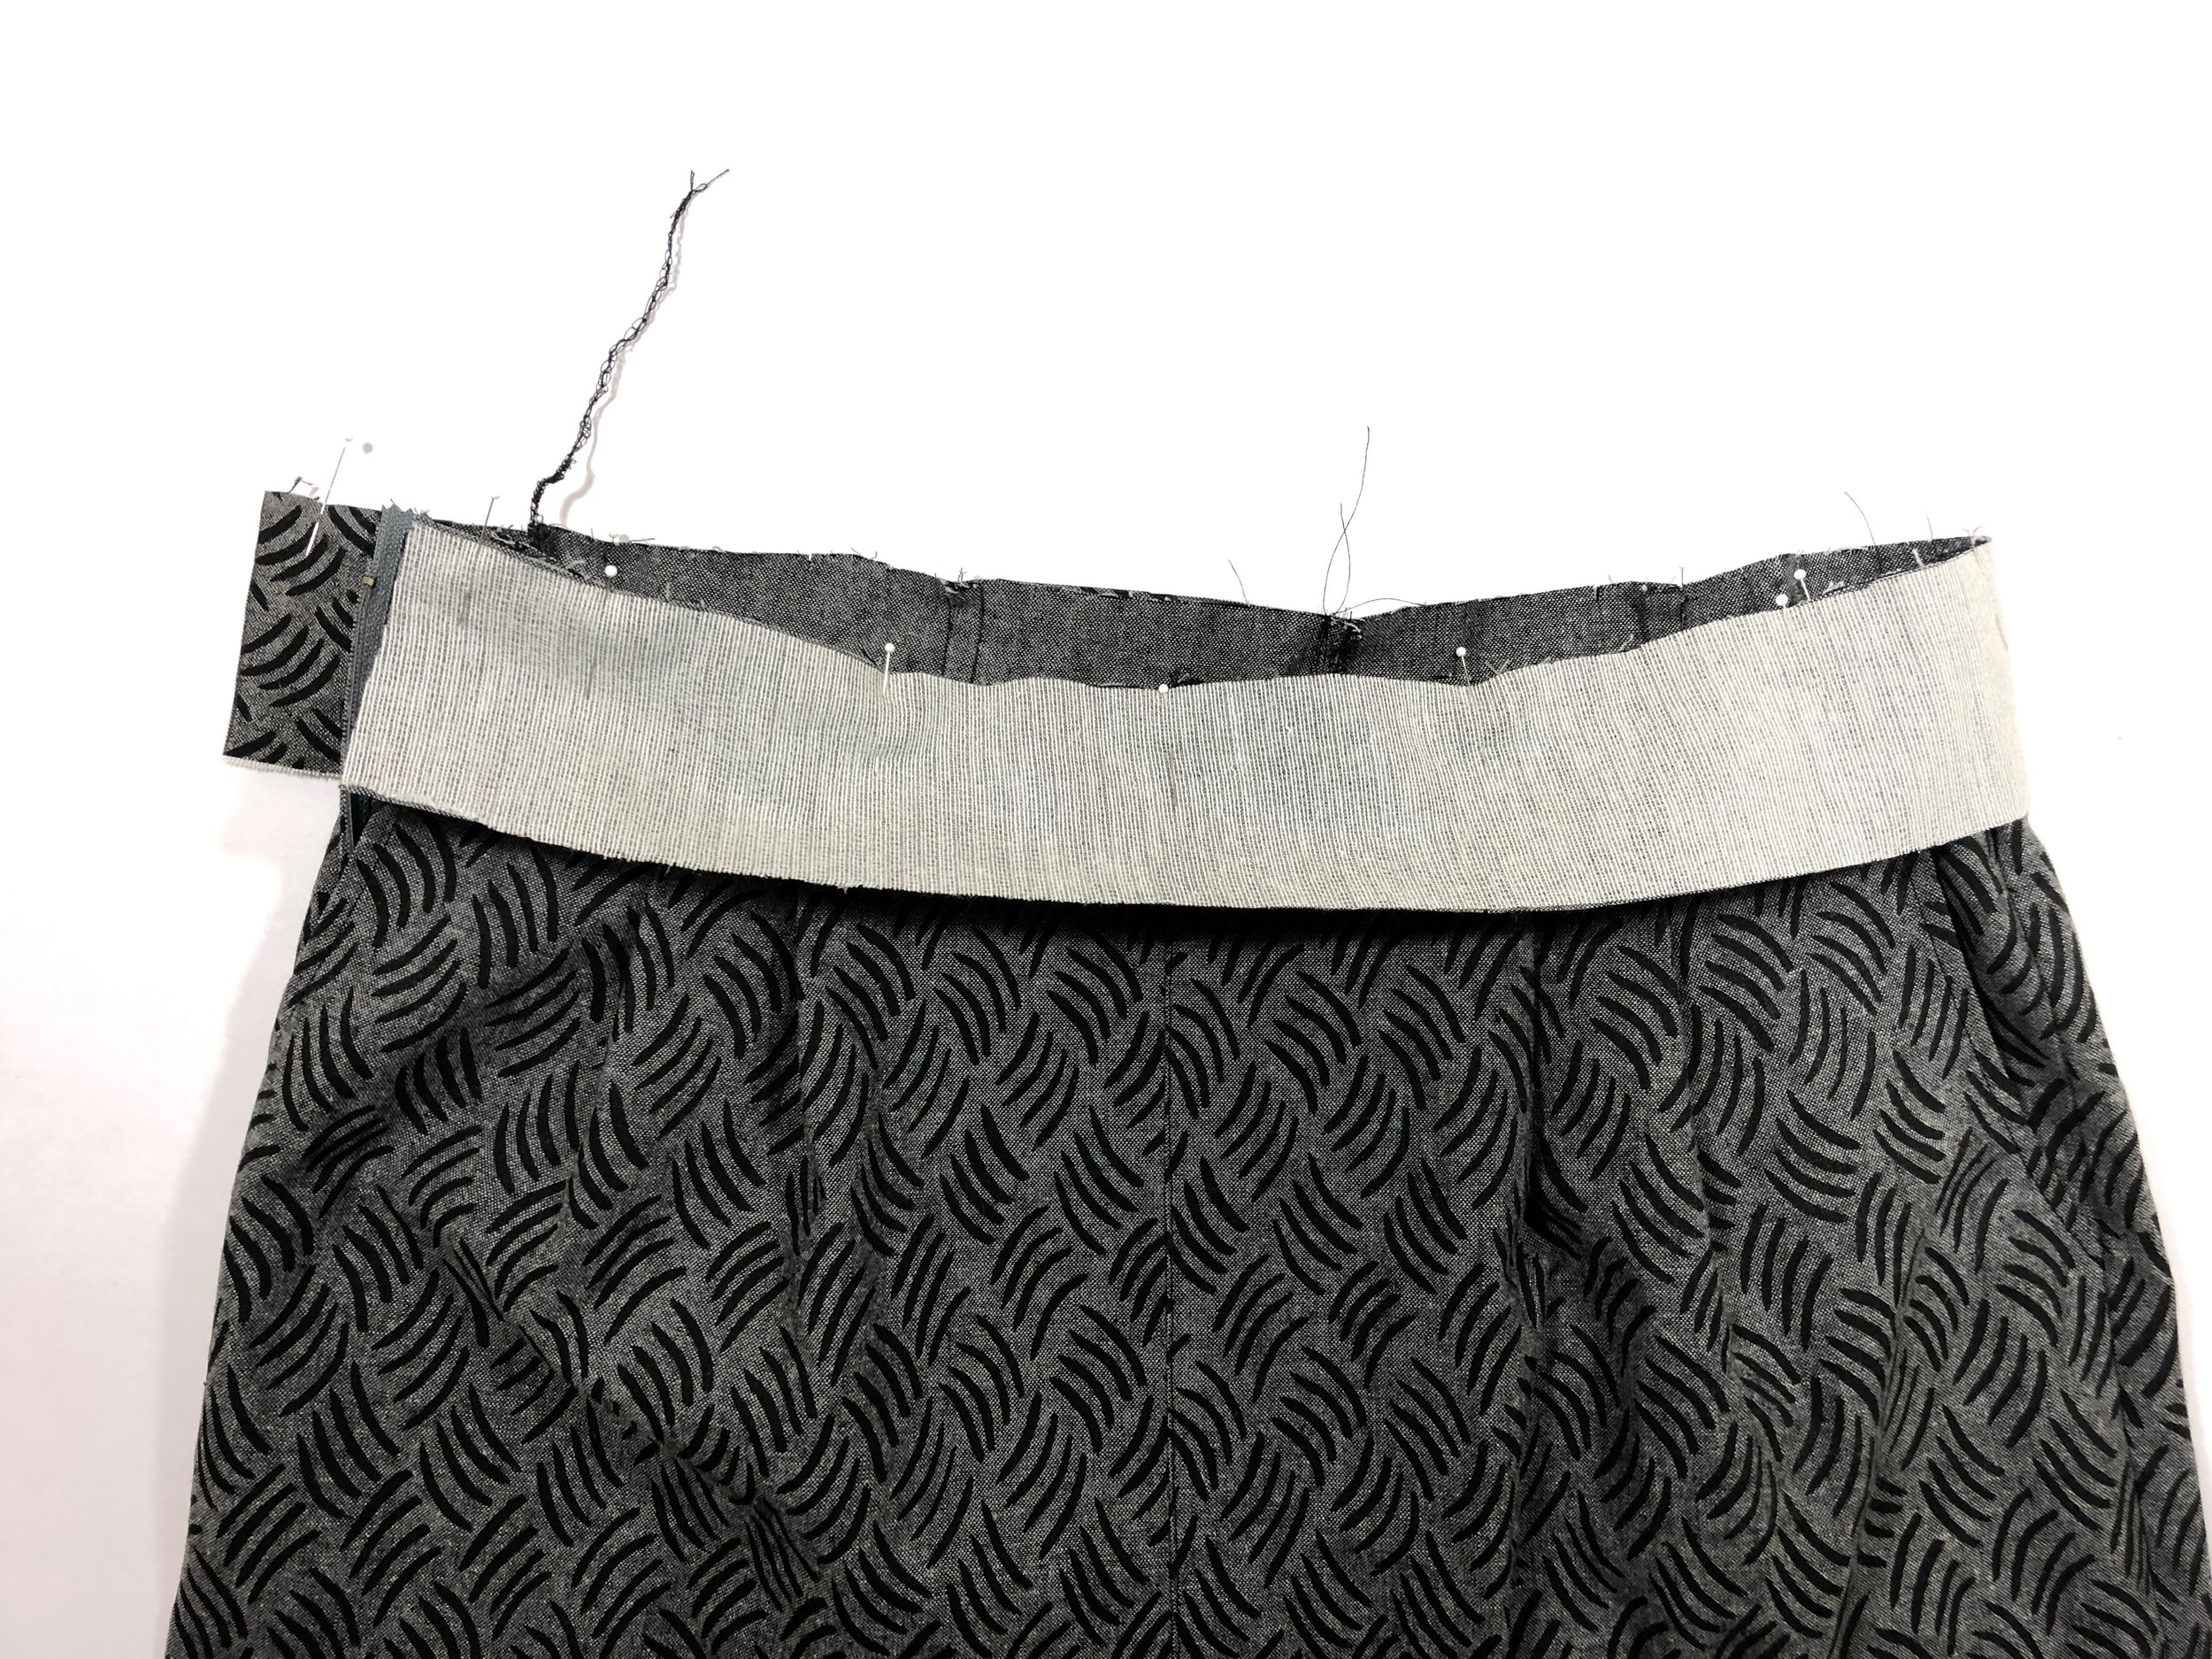 42. With right sides together, pin the interfaced waistband to the top of the pants, matching notches on the waistband to center back seam, center front seam, and side seams on the pants. There should be excess hanging over at the pocket opening.